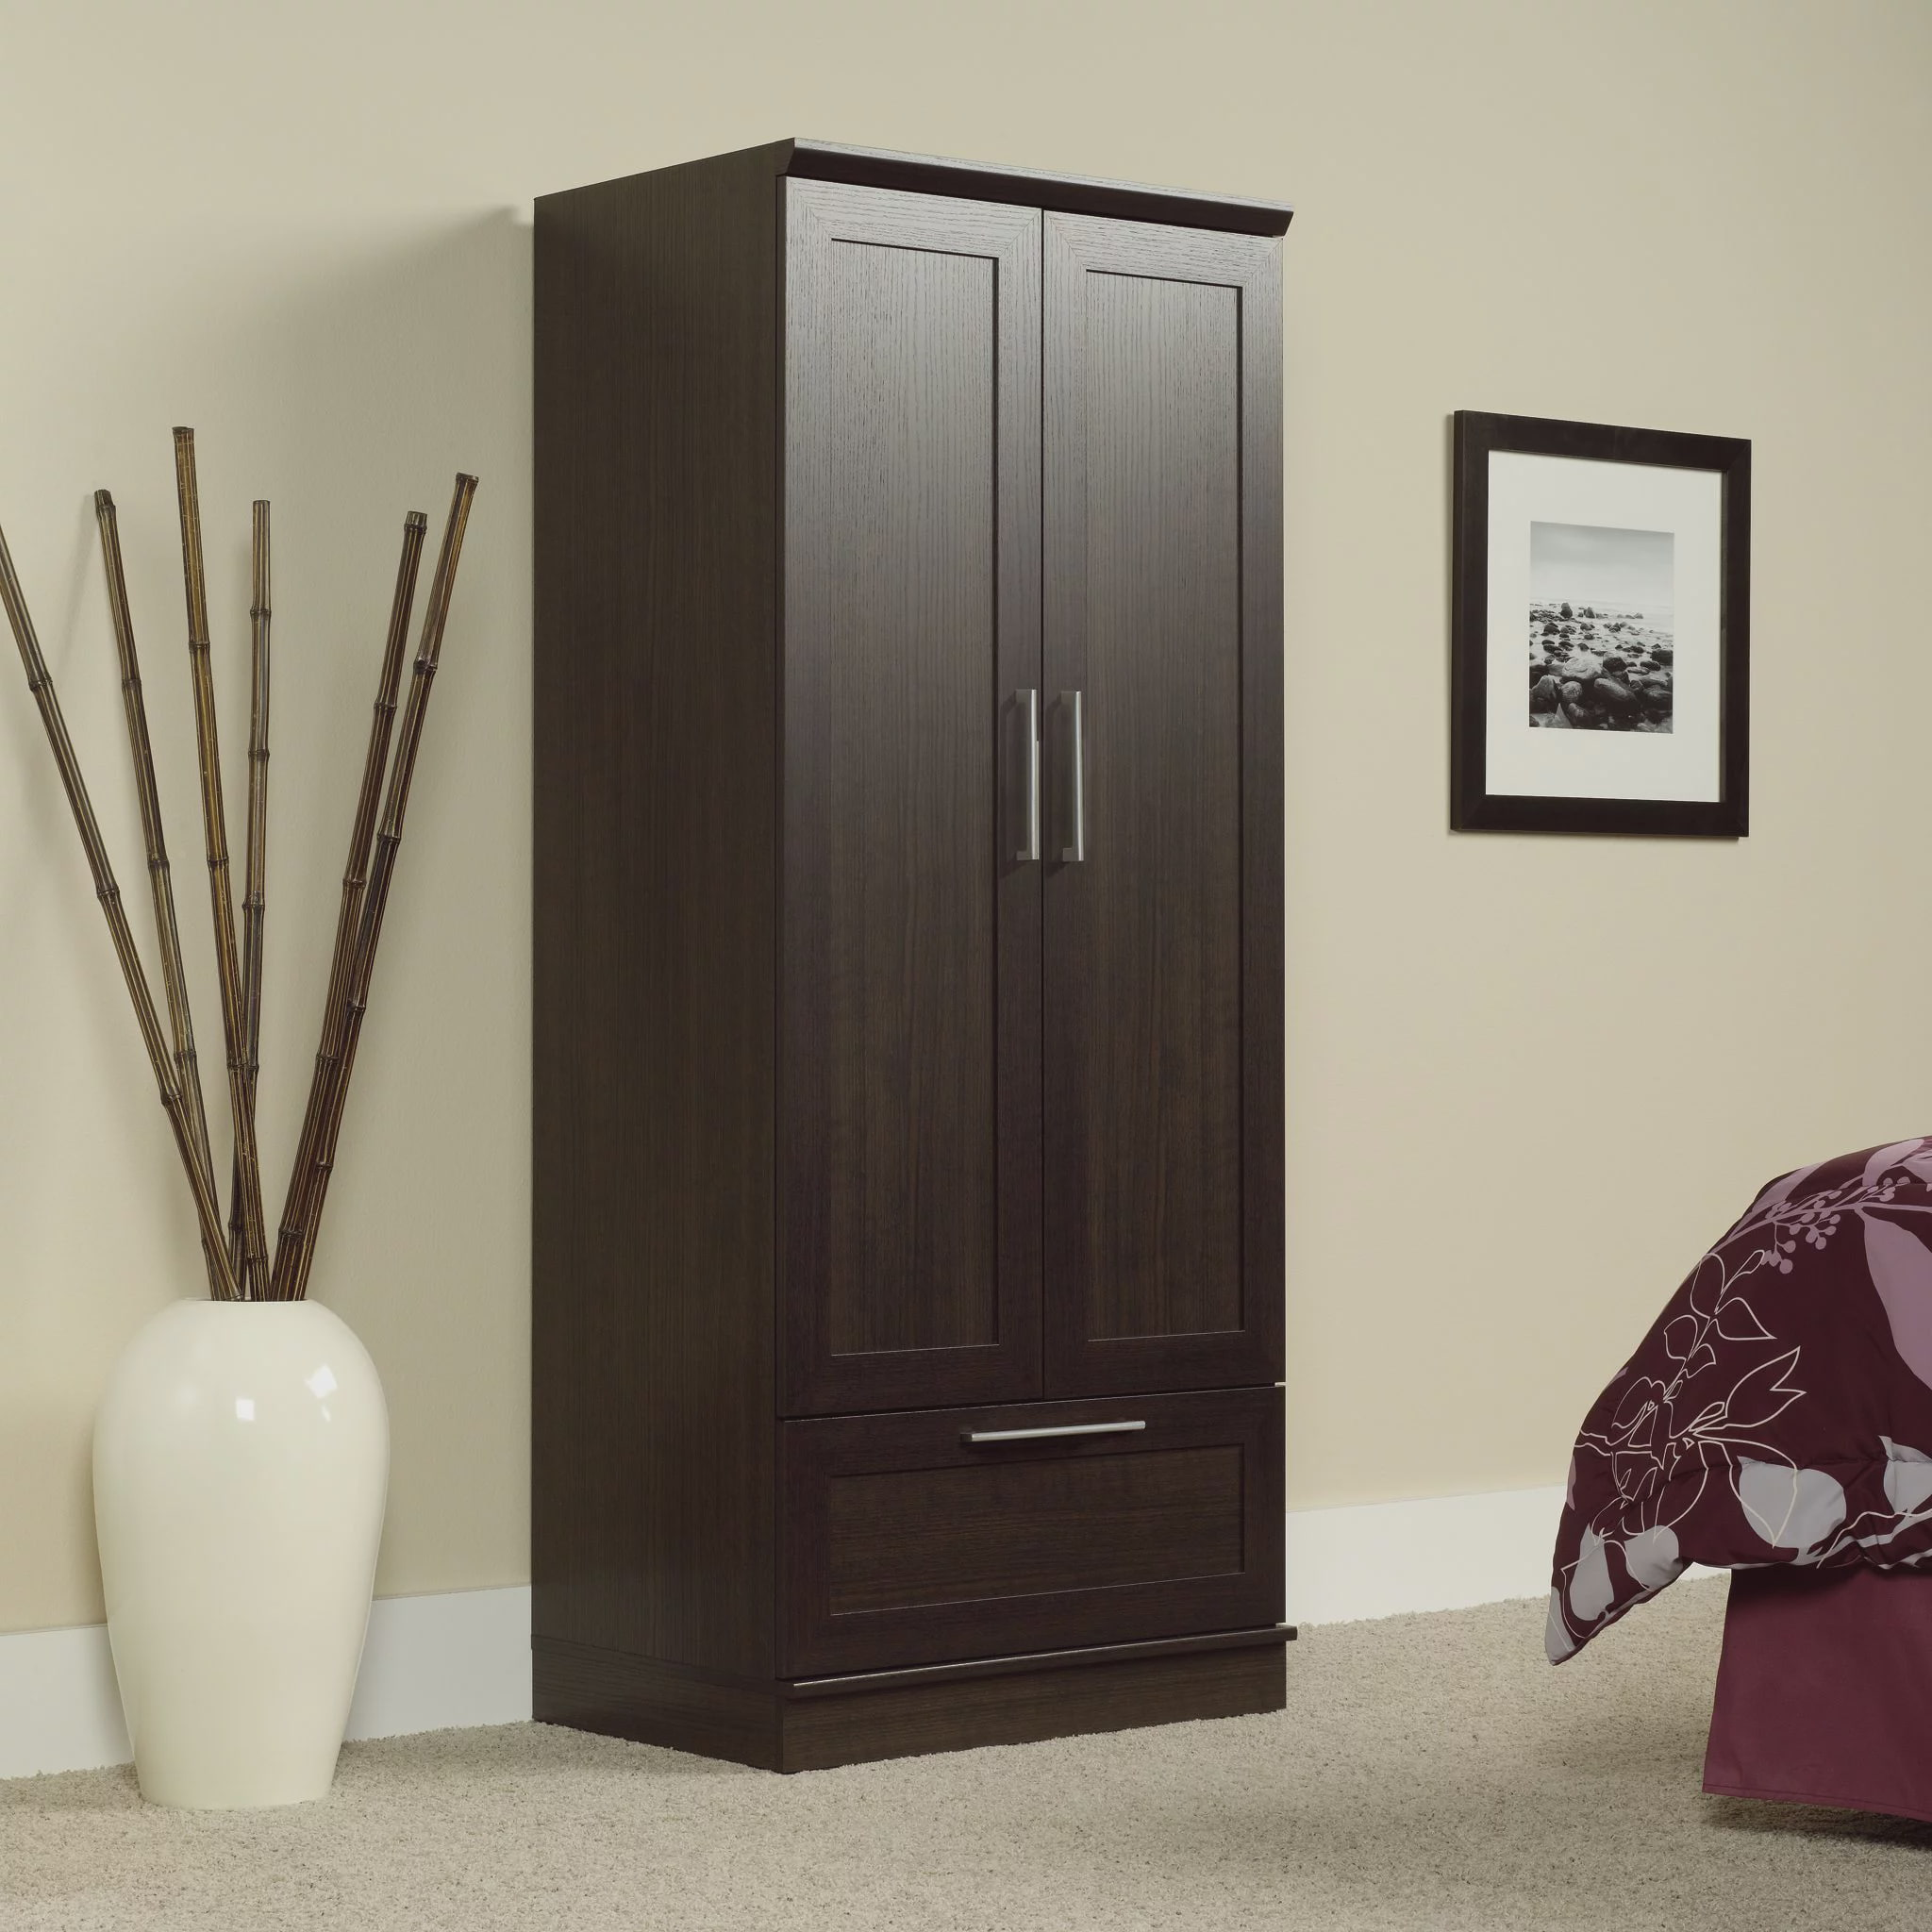 Sauder Homeplus Wardrobe Storage